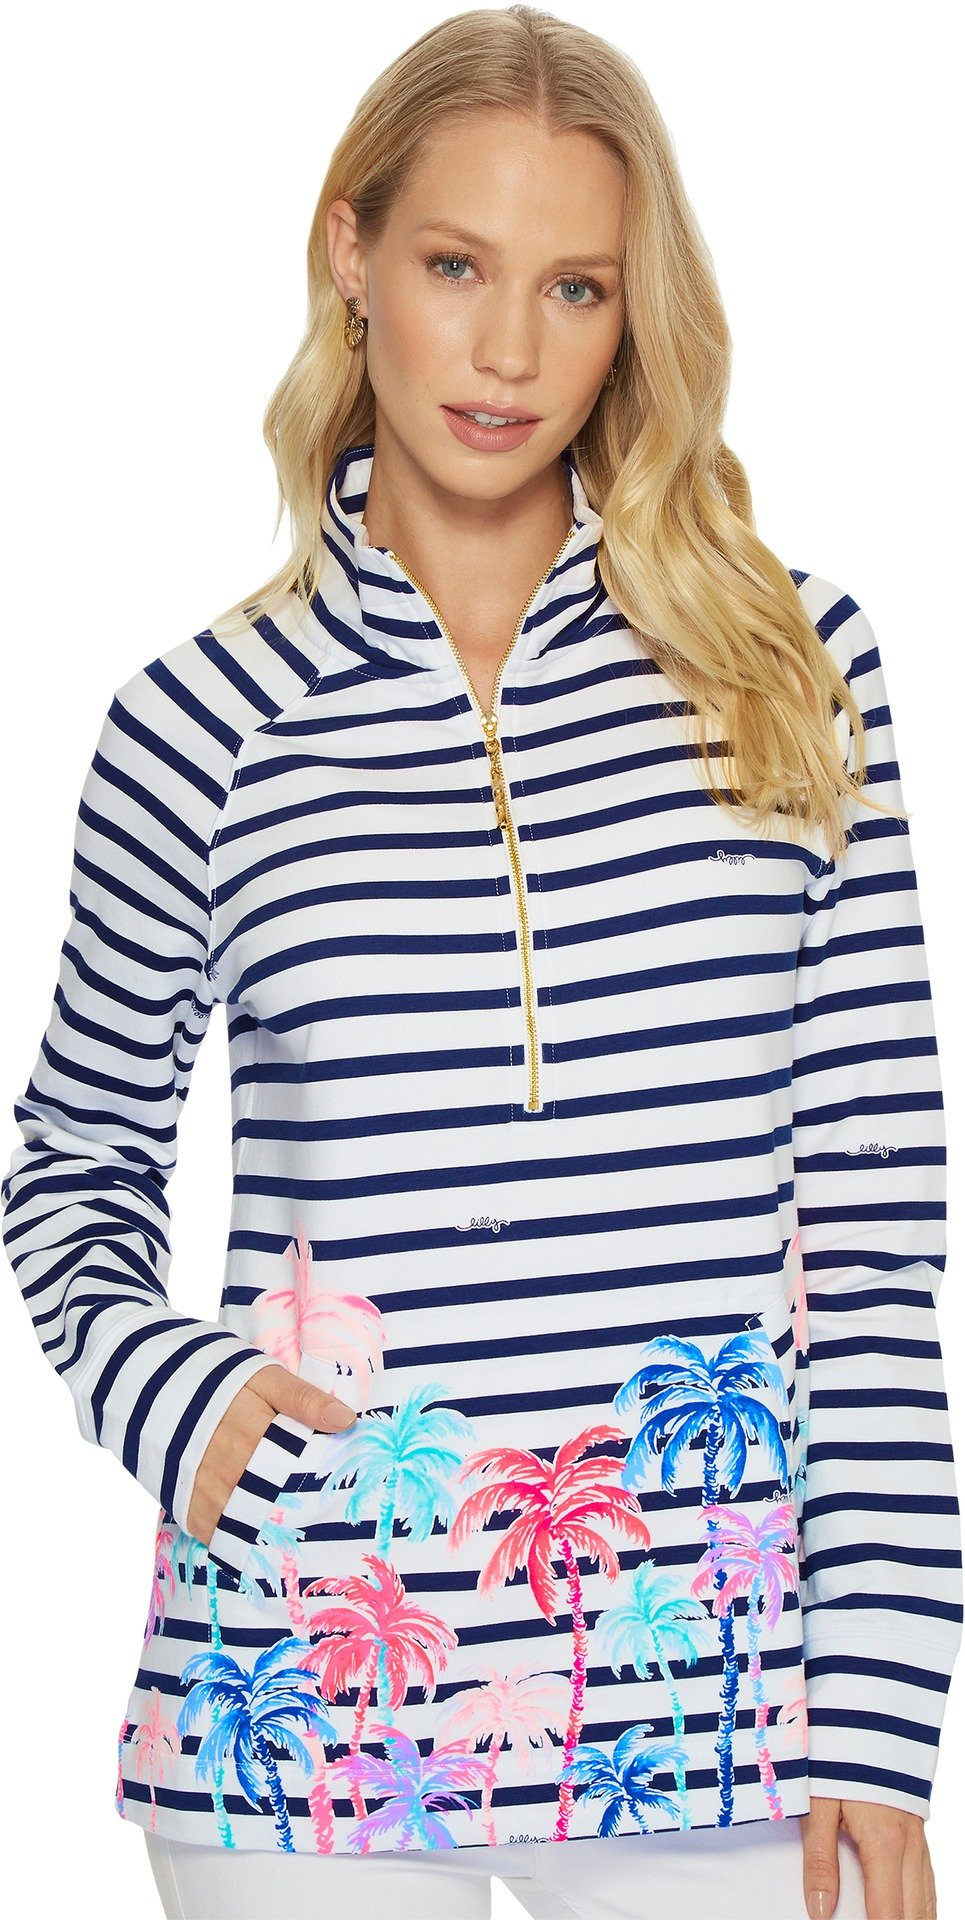 Lilly Pulitzer Women's UPF 50+ Skipper Popover Resort White Desert Palm Stripe Engineered Skipper XX-Small